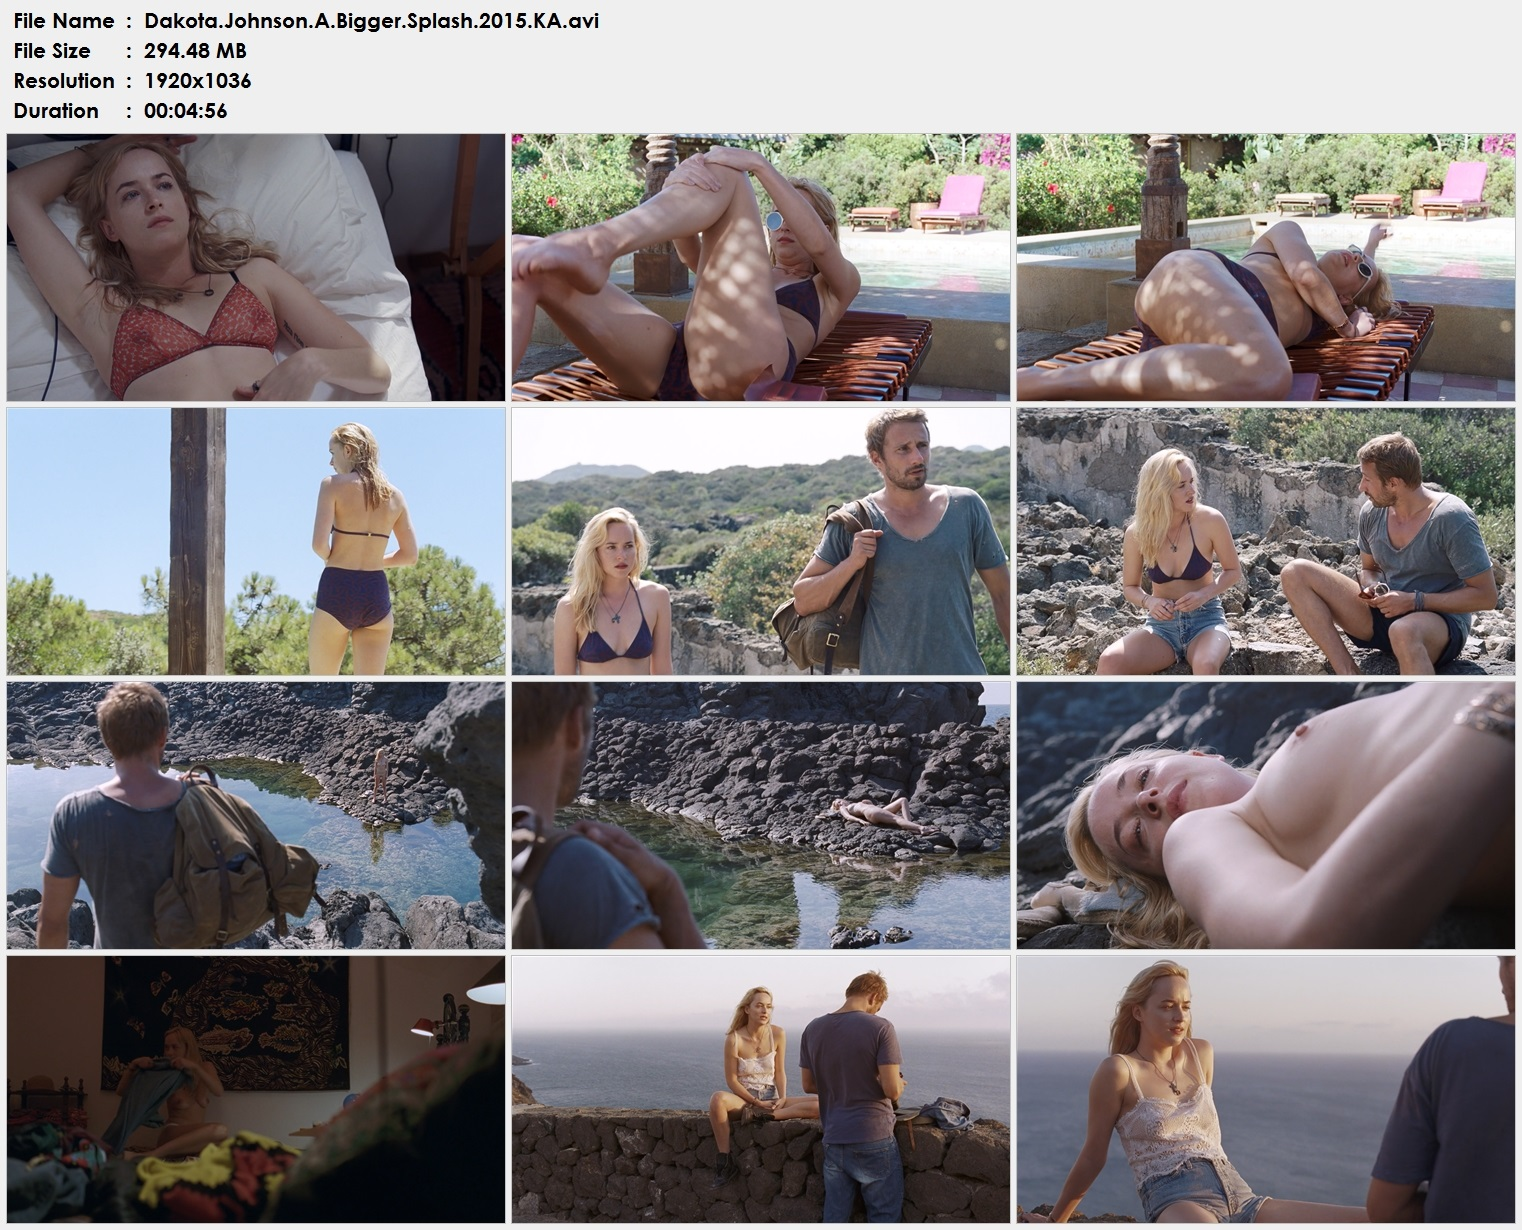 Dakota.Johnson.A.Bigger.Splash.2015.KA.avi